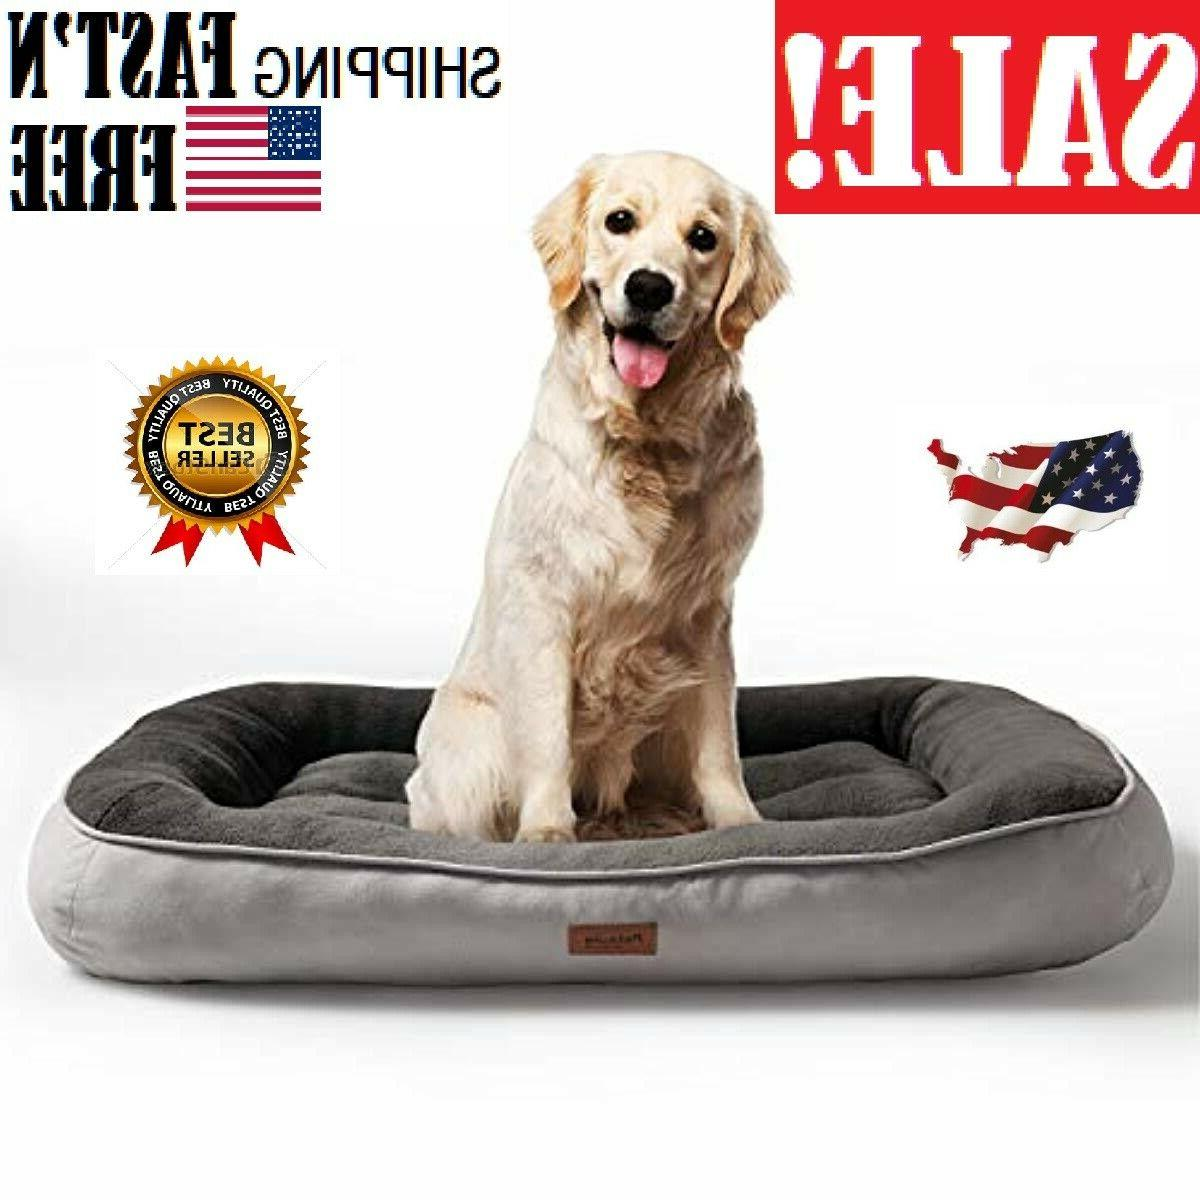 plush dog bed 32 36 43 inches